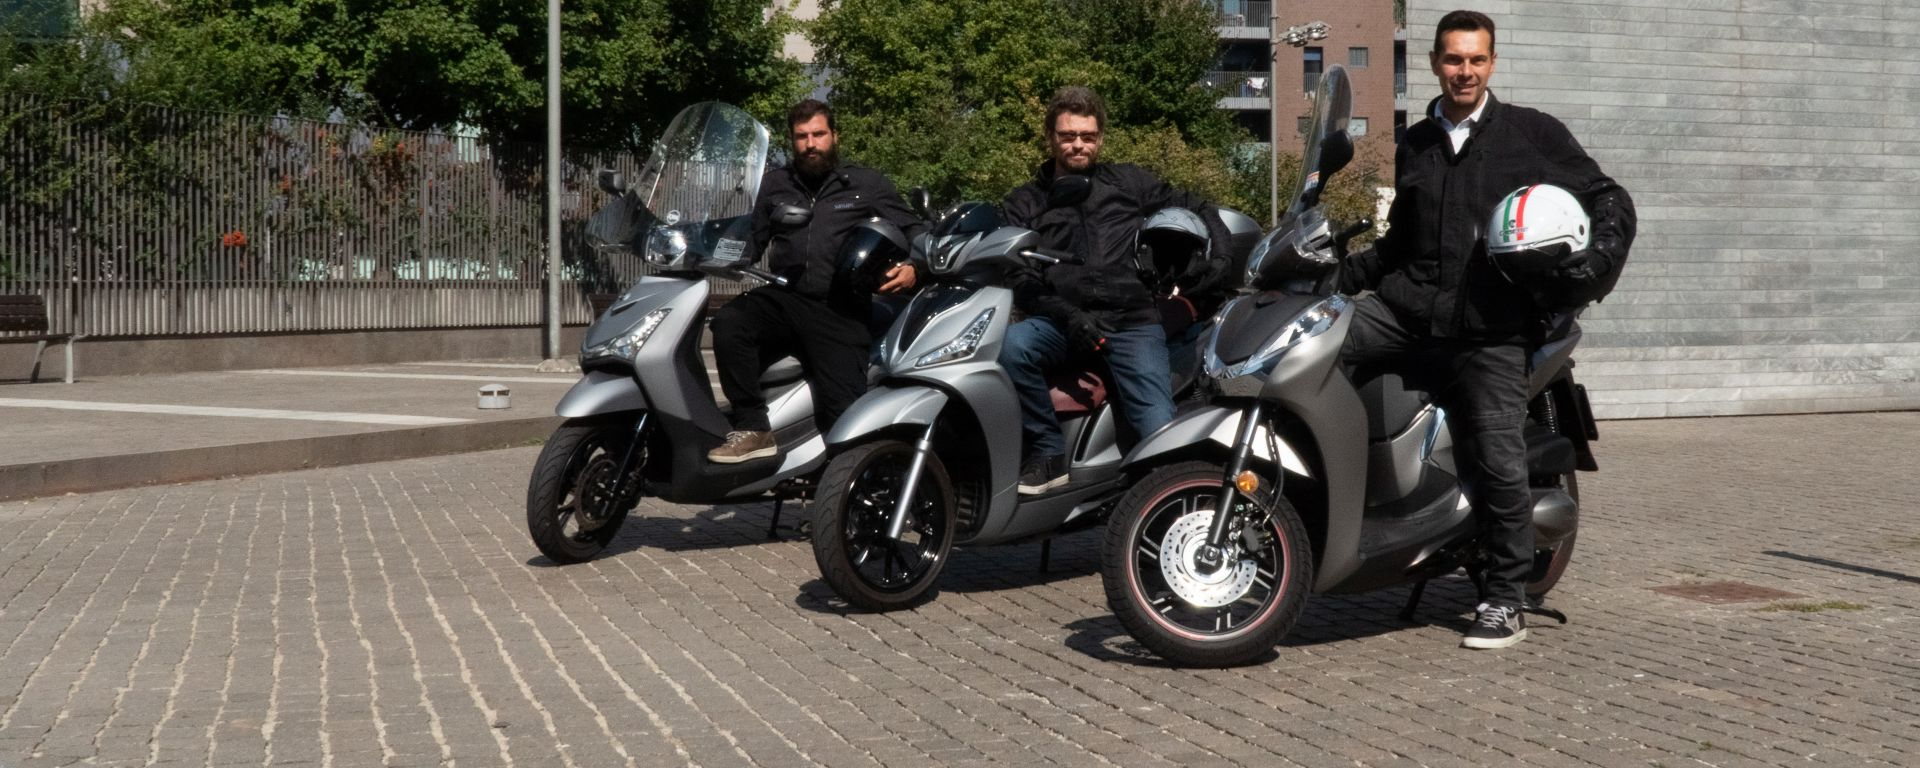 Sym HD 300, Kymco People S 300, Honda SH 300i: scooter a confronto